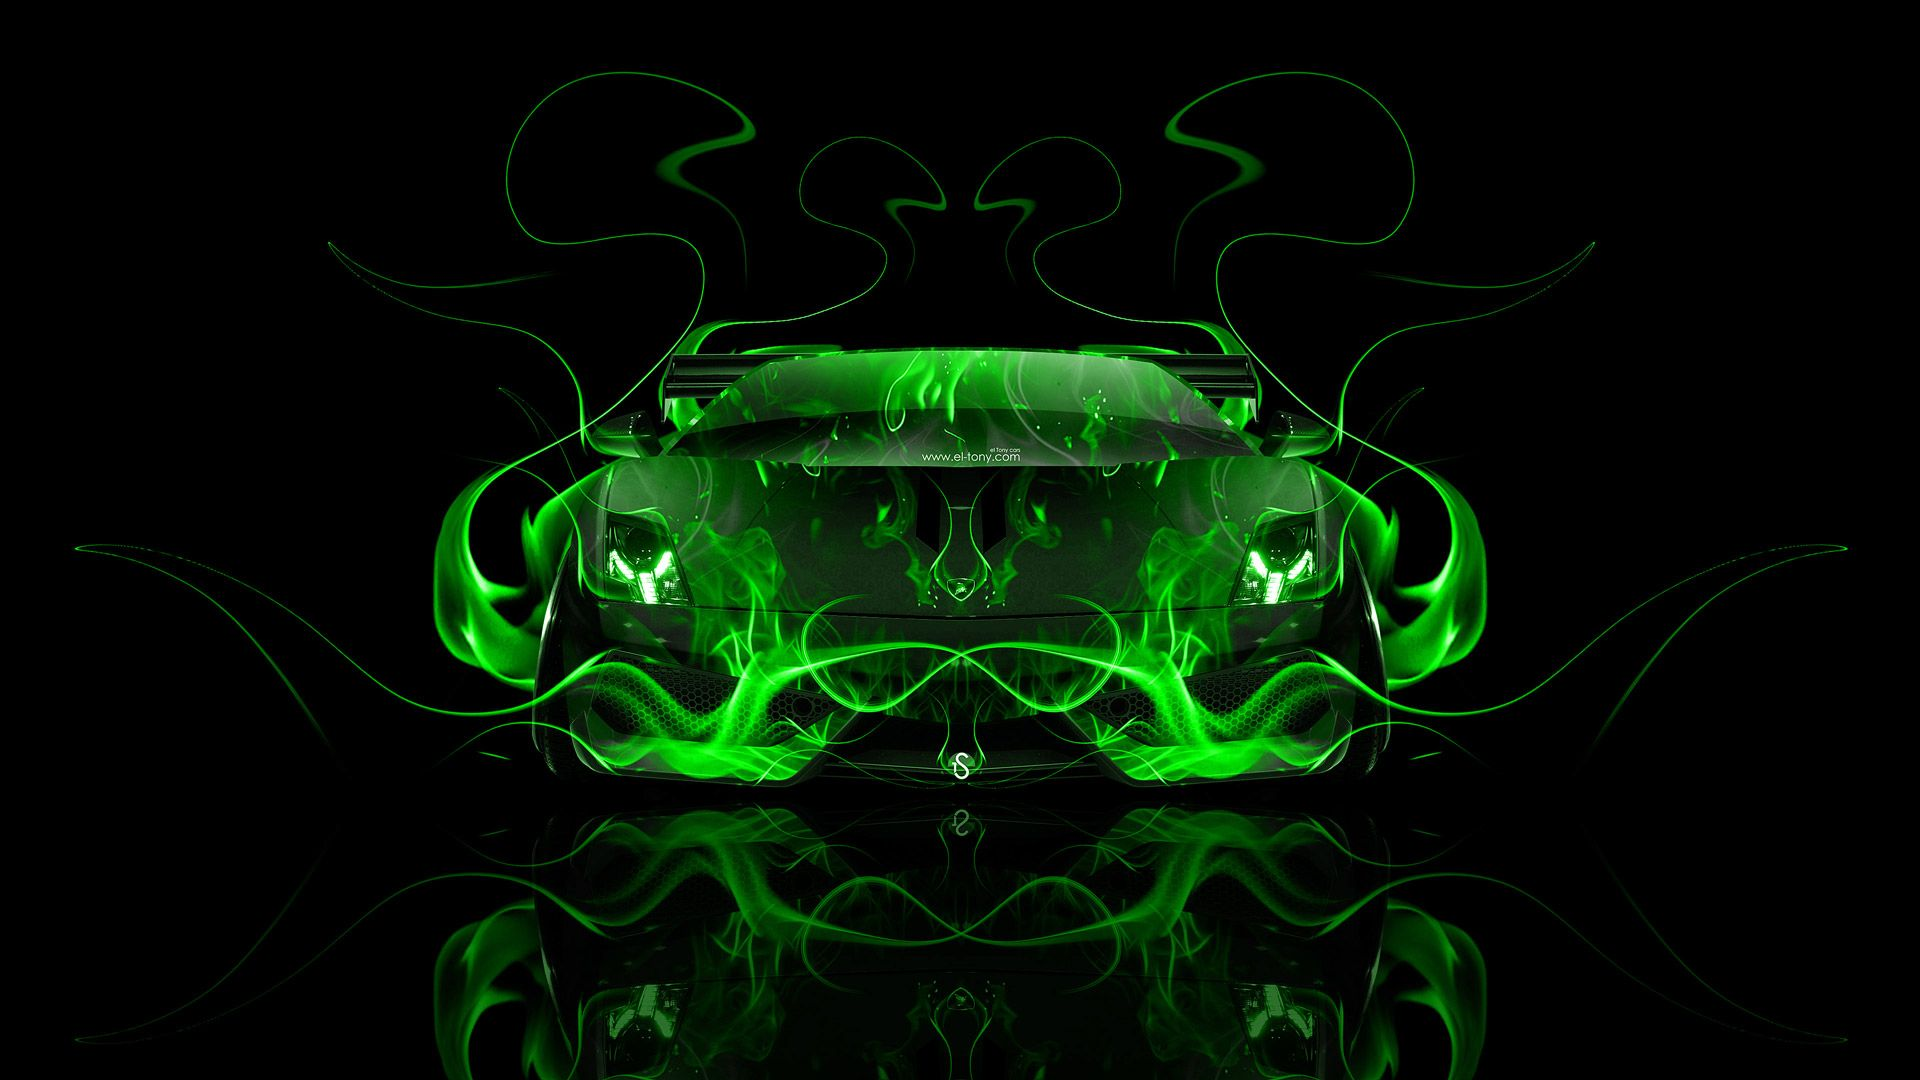 Superbe Lamborghini Gallardo Front Green Fire Abstract Car 2014